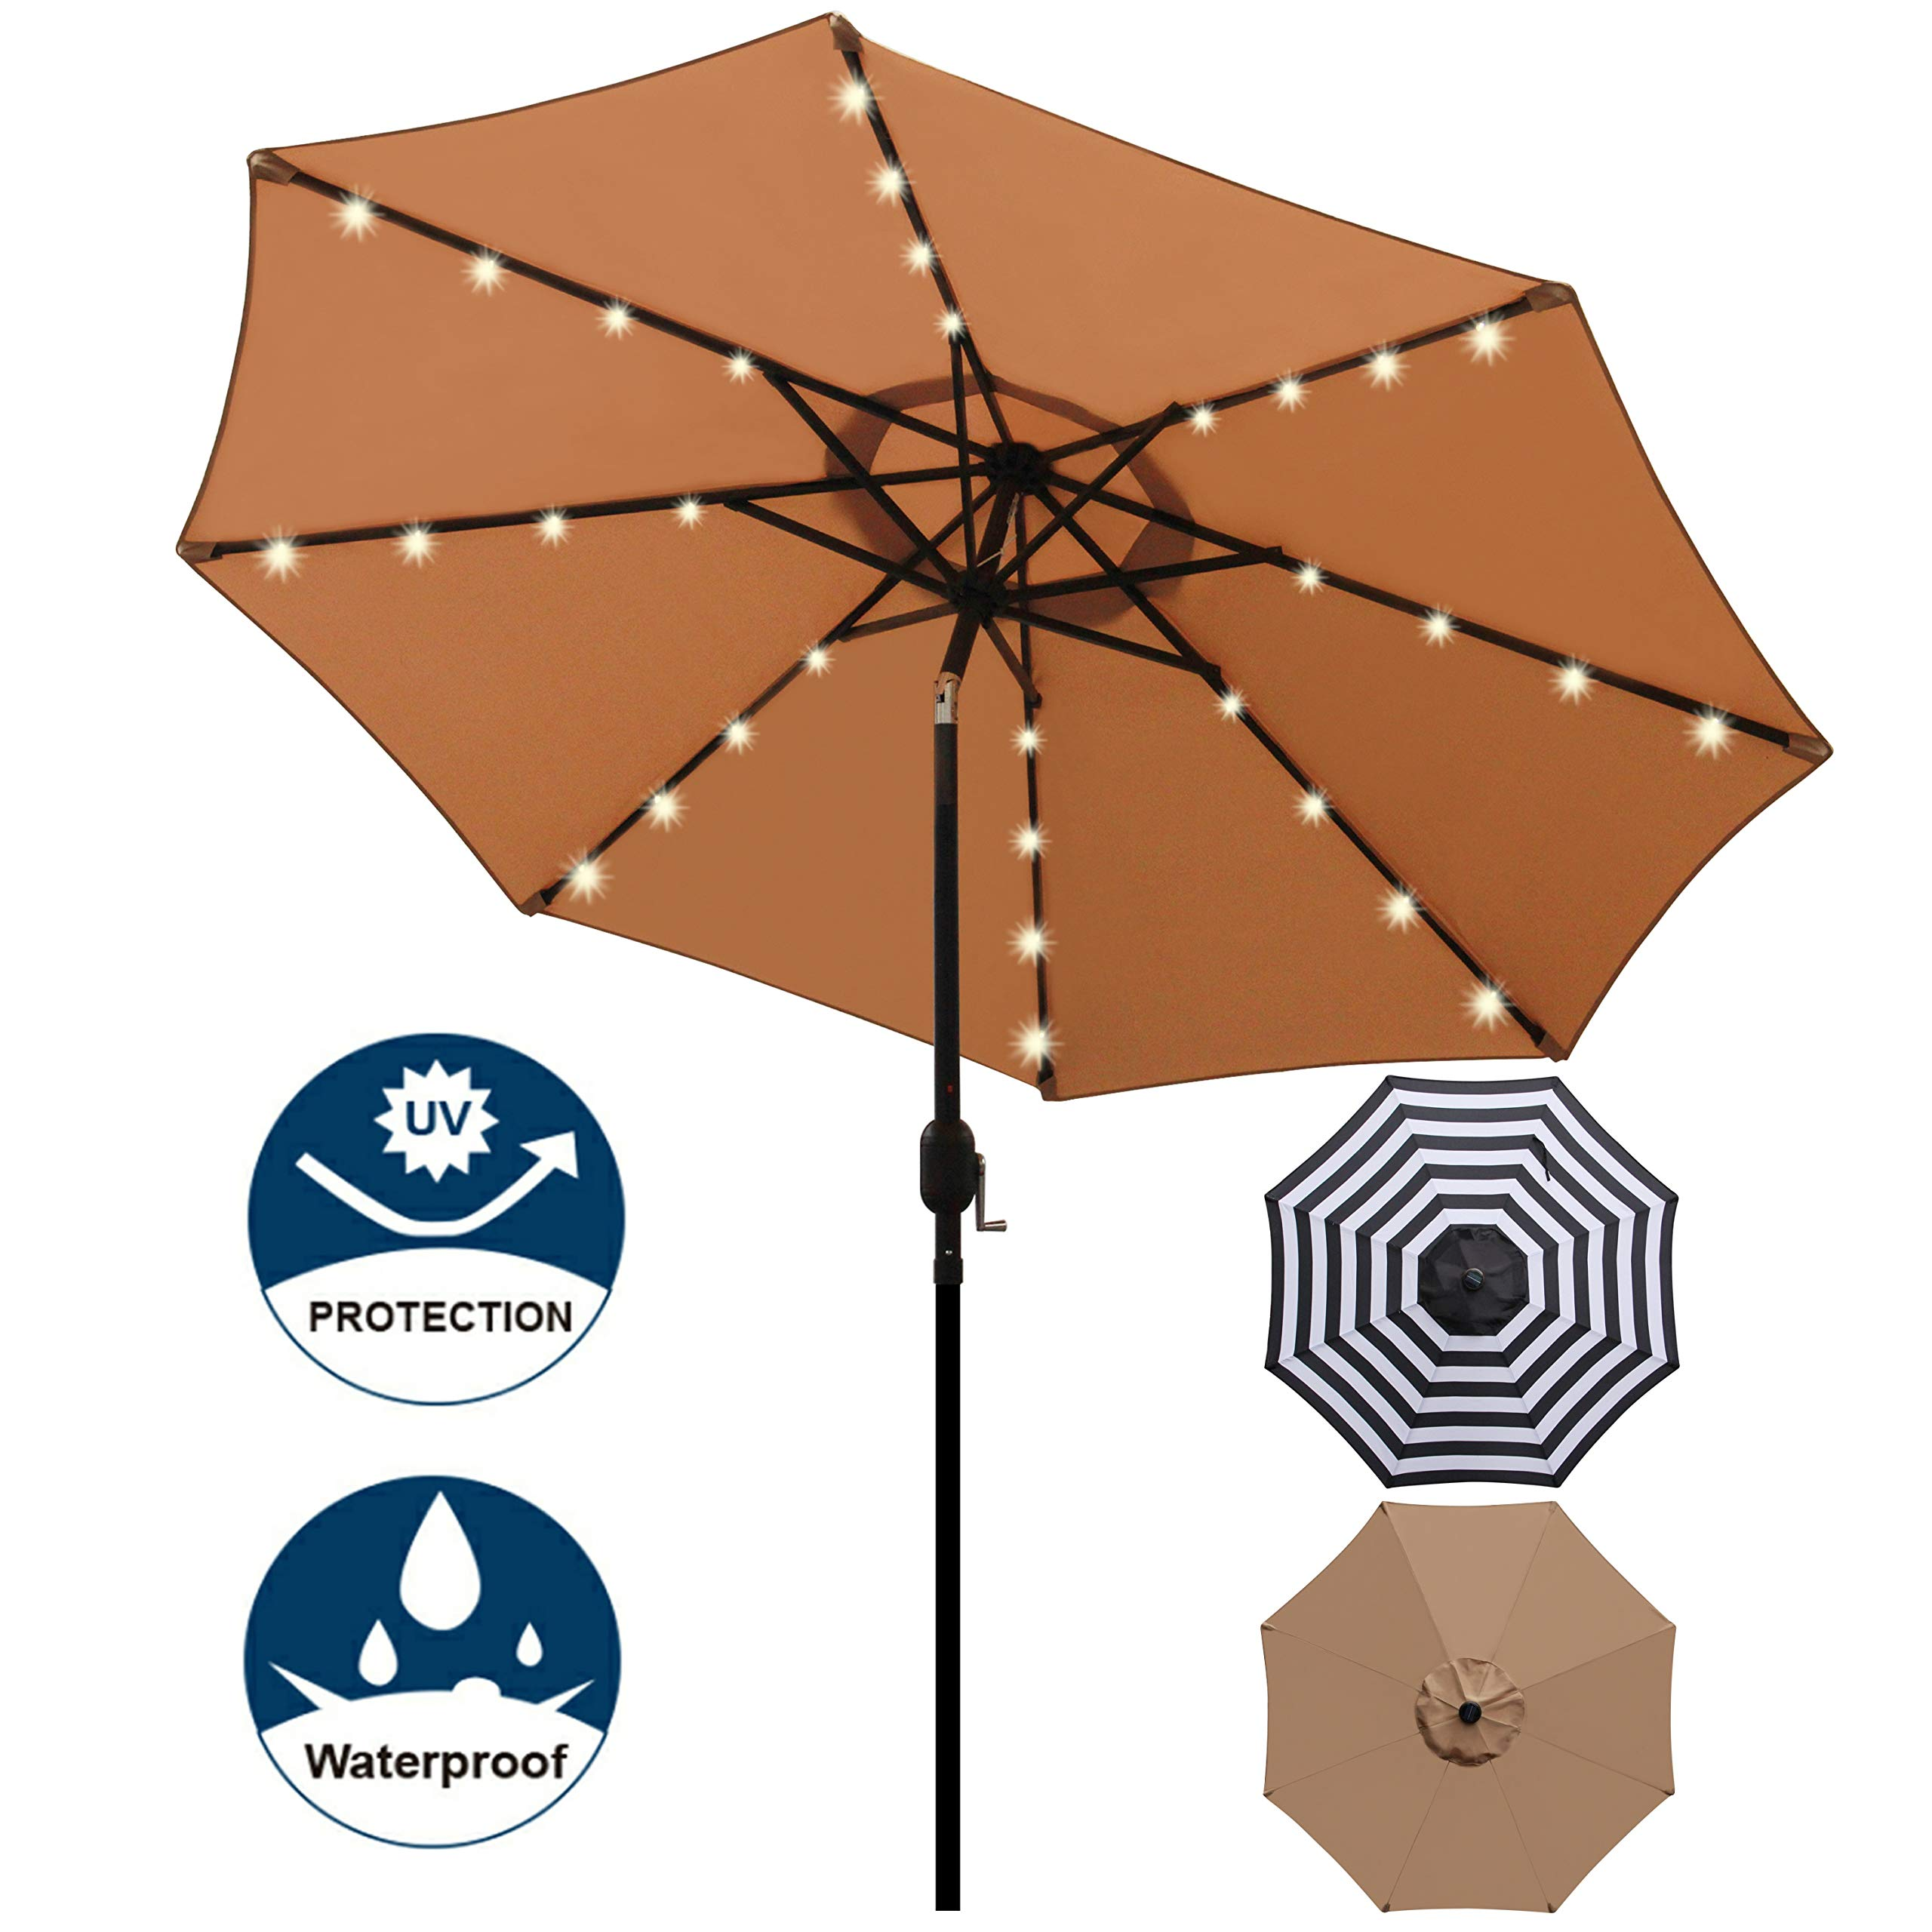 Blissun 9 ft Solar Umbrella, 32 LED Lighted Patio Umbrella, Table Market Umbrella, Outdoor Umbrella for Garden, Deck, Backyard, Pool and Beach (Tan) by Blissun